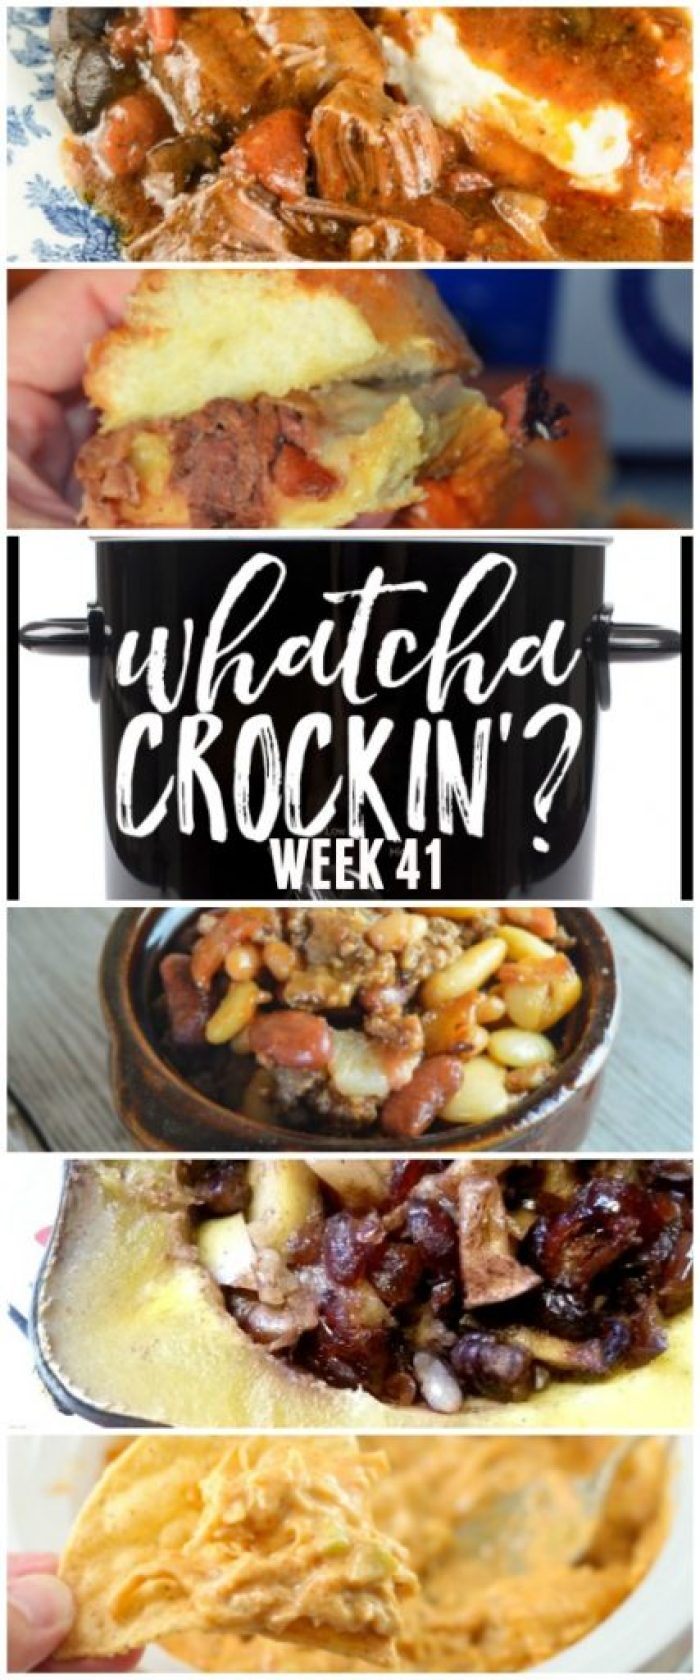 This week's Whatcha Crockin' crock pot recipes include Crock Pot Chicken and Noodles, Crock Pot Chicken Enchilada Dip, Crock Pot Calico Beans with Bacon and Ground Beef, Crock Pot French Onion Beef Sliders, Crock Pot Italian Pot Roast, Crock Pot Hamburger Soup, Slow Cooker Chocolate Football Rice Krispies, Crock Pot Apple Stuffed Acorn Squash and much more!